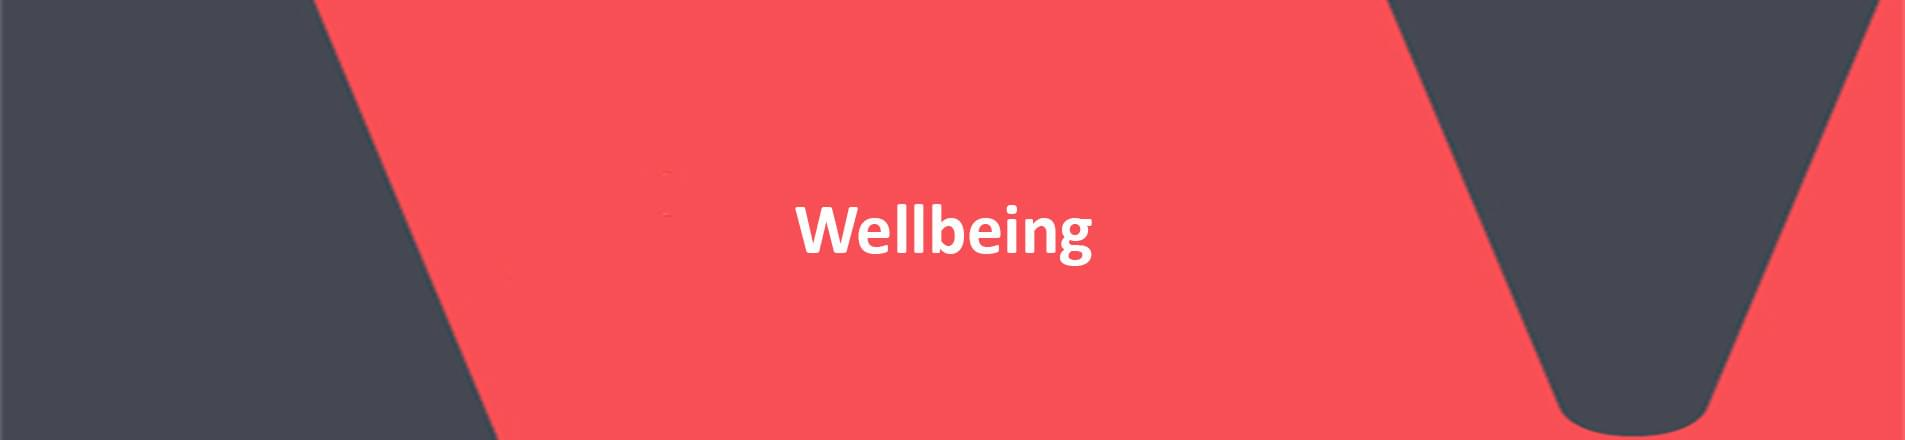 The word wellbeing written on red VERCIDA branded background